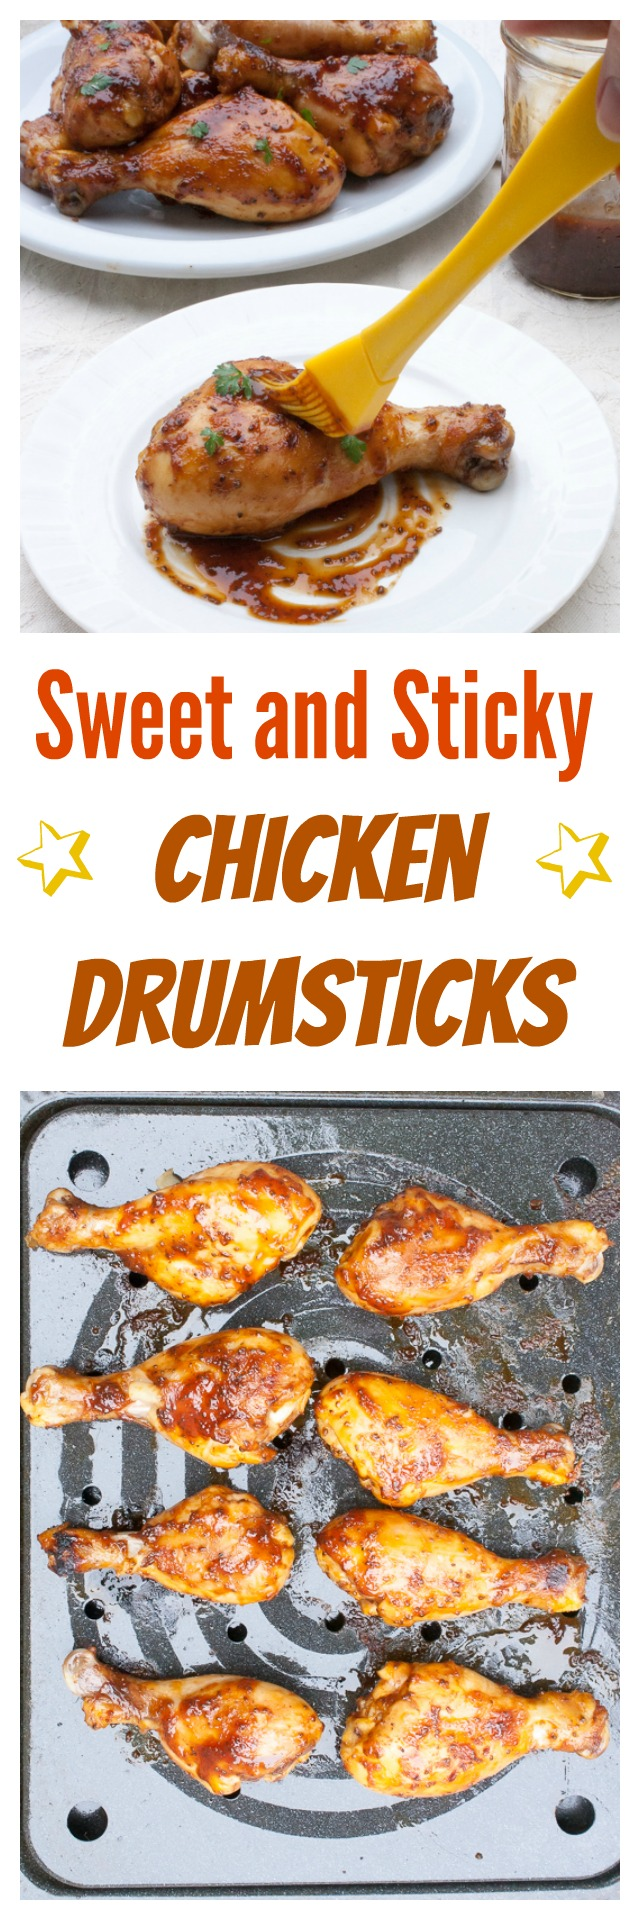 Just what you're craving! Sweet and Sticky Chicken Drumsticks | @tspcurry